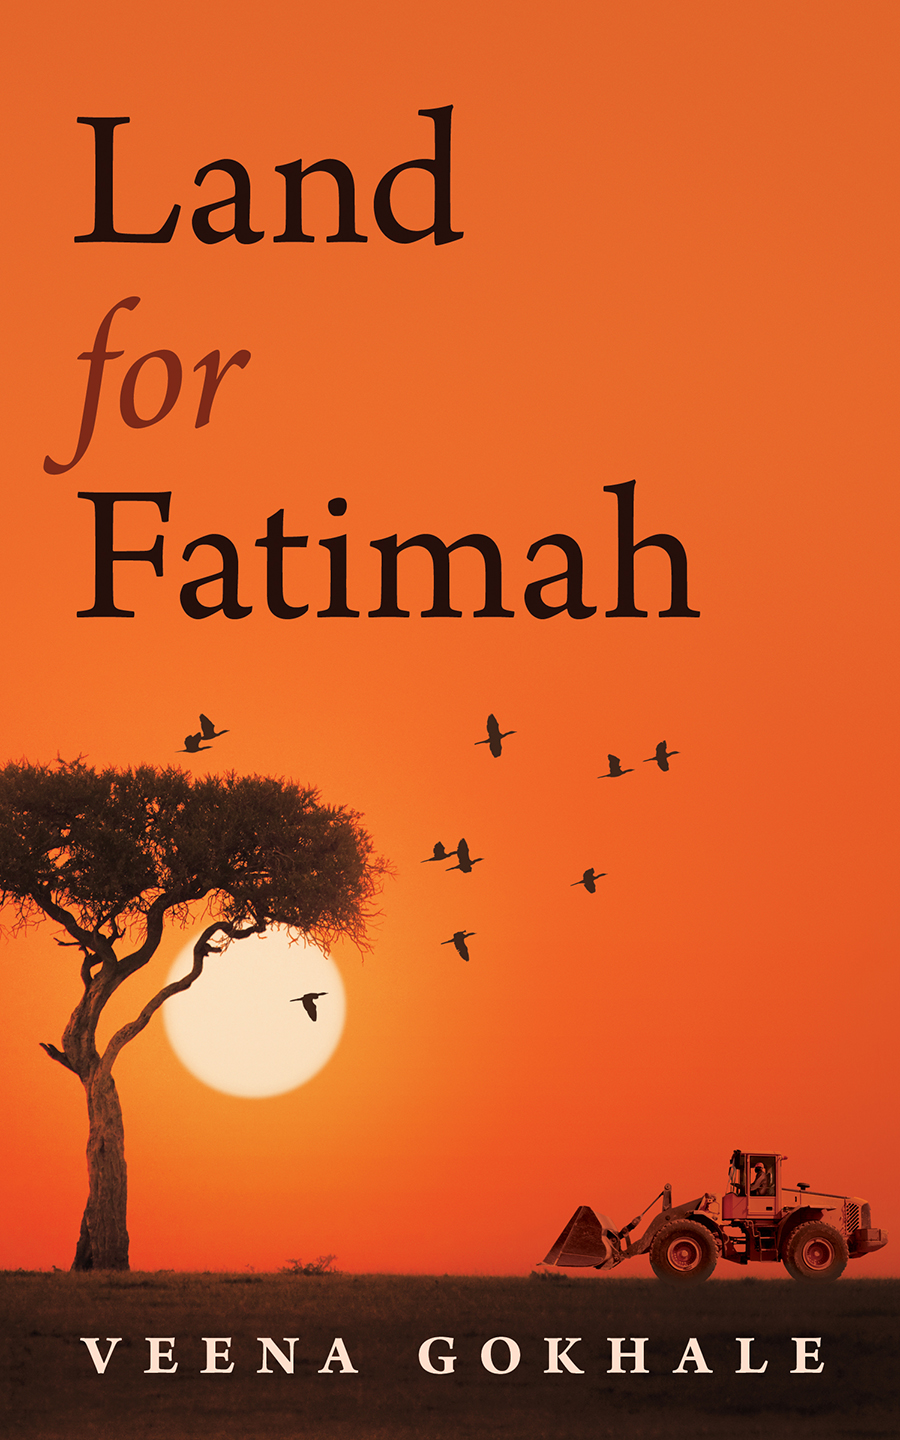 Land for Fatimah